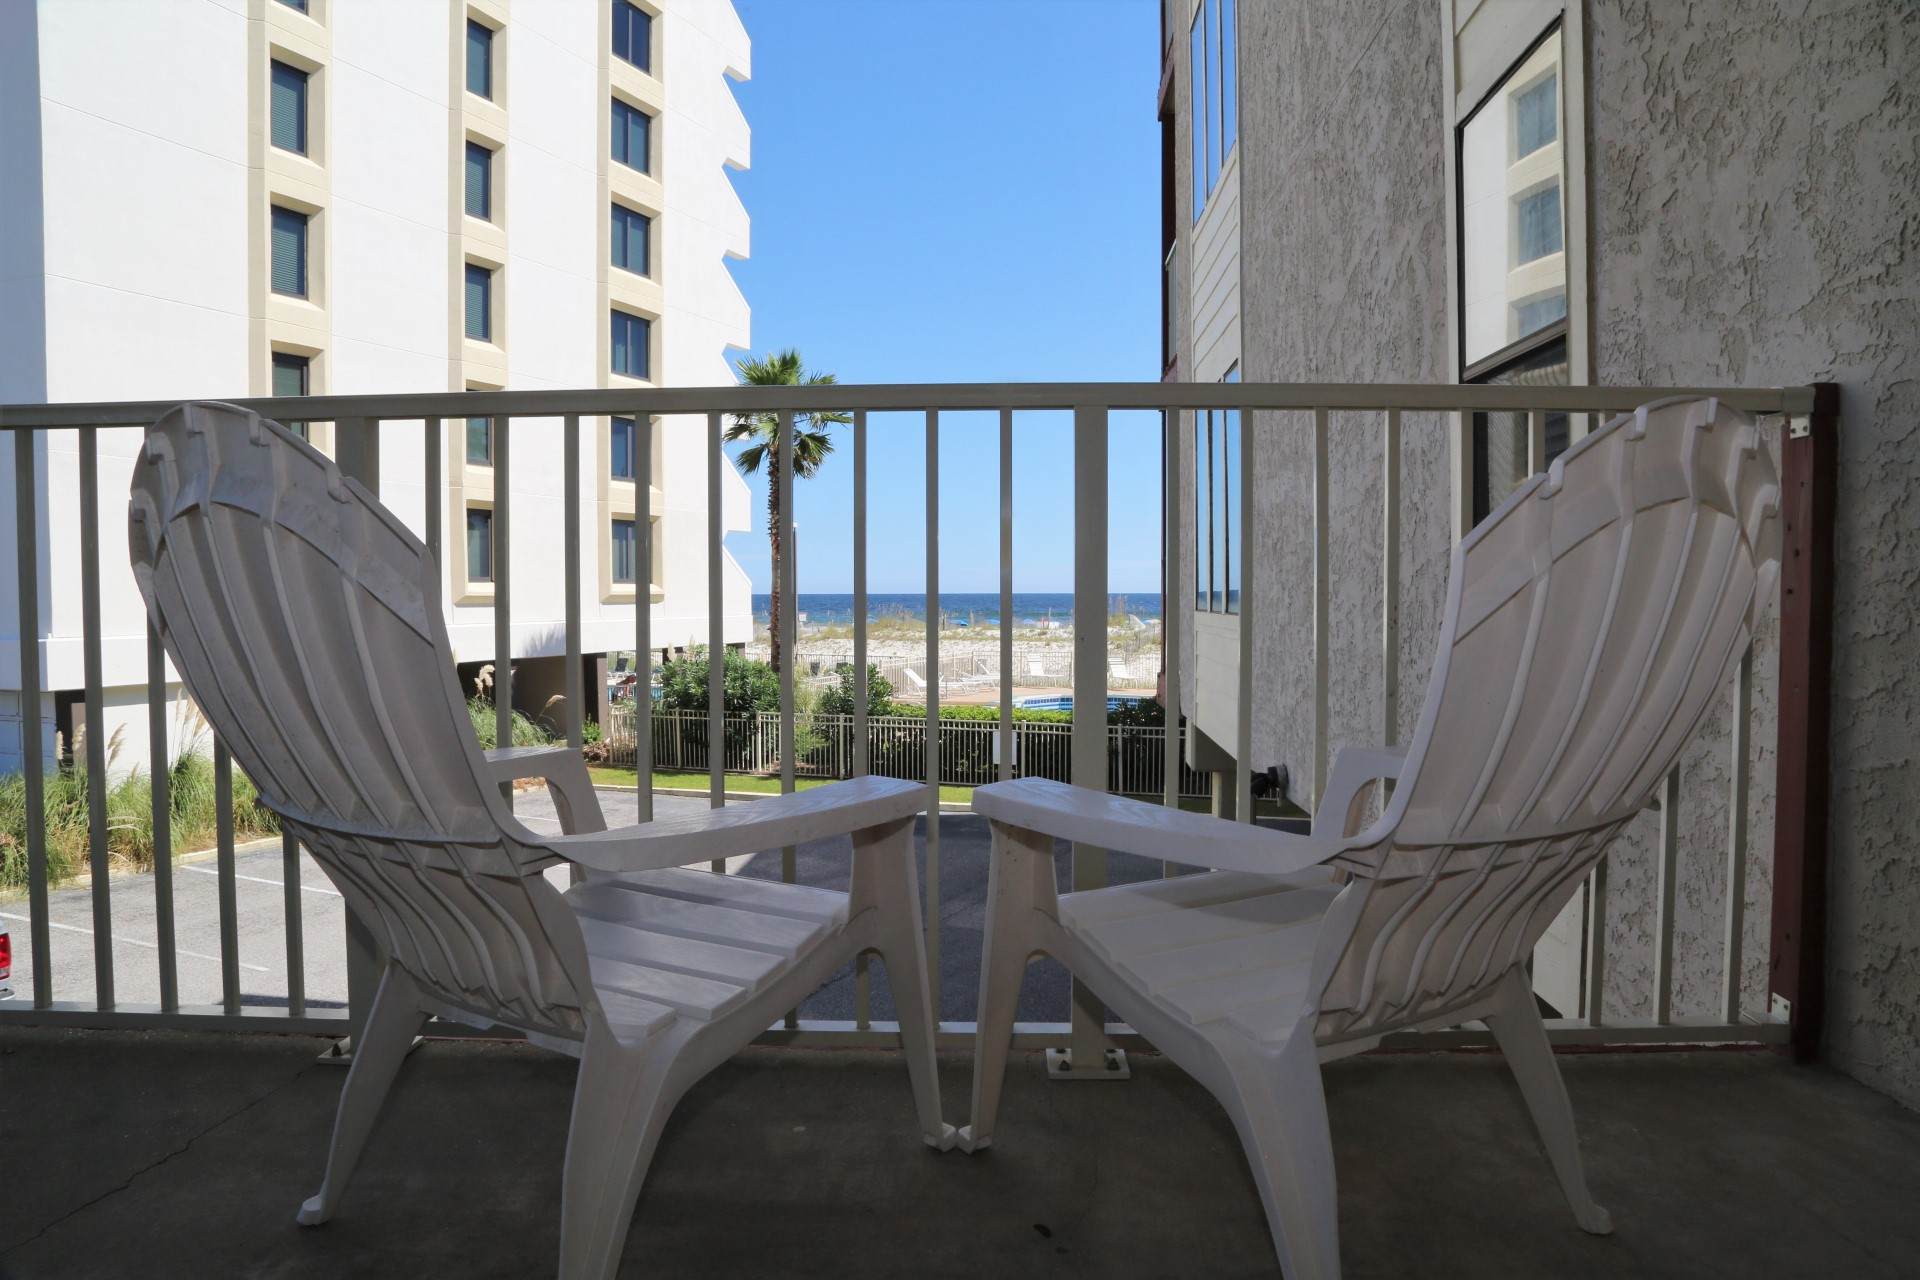 Relax on your balcony while enjoying the sound of the waves